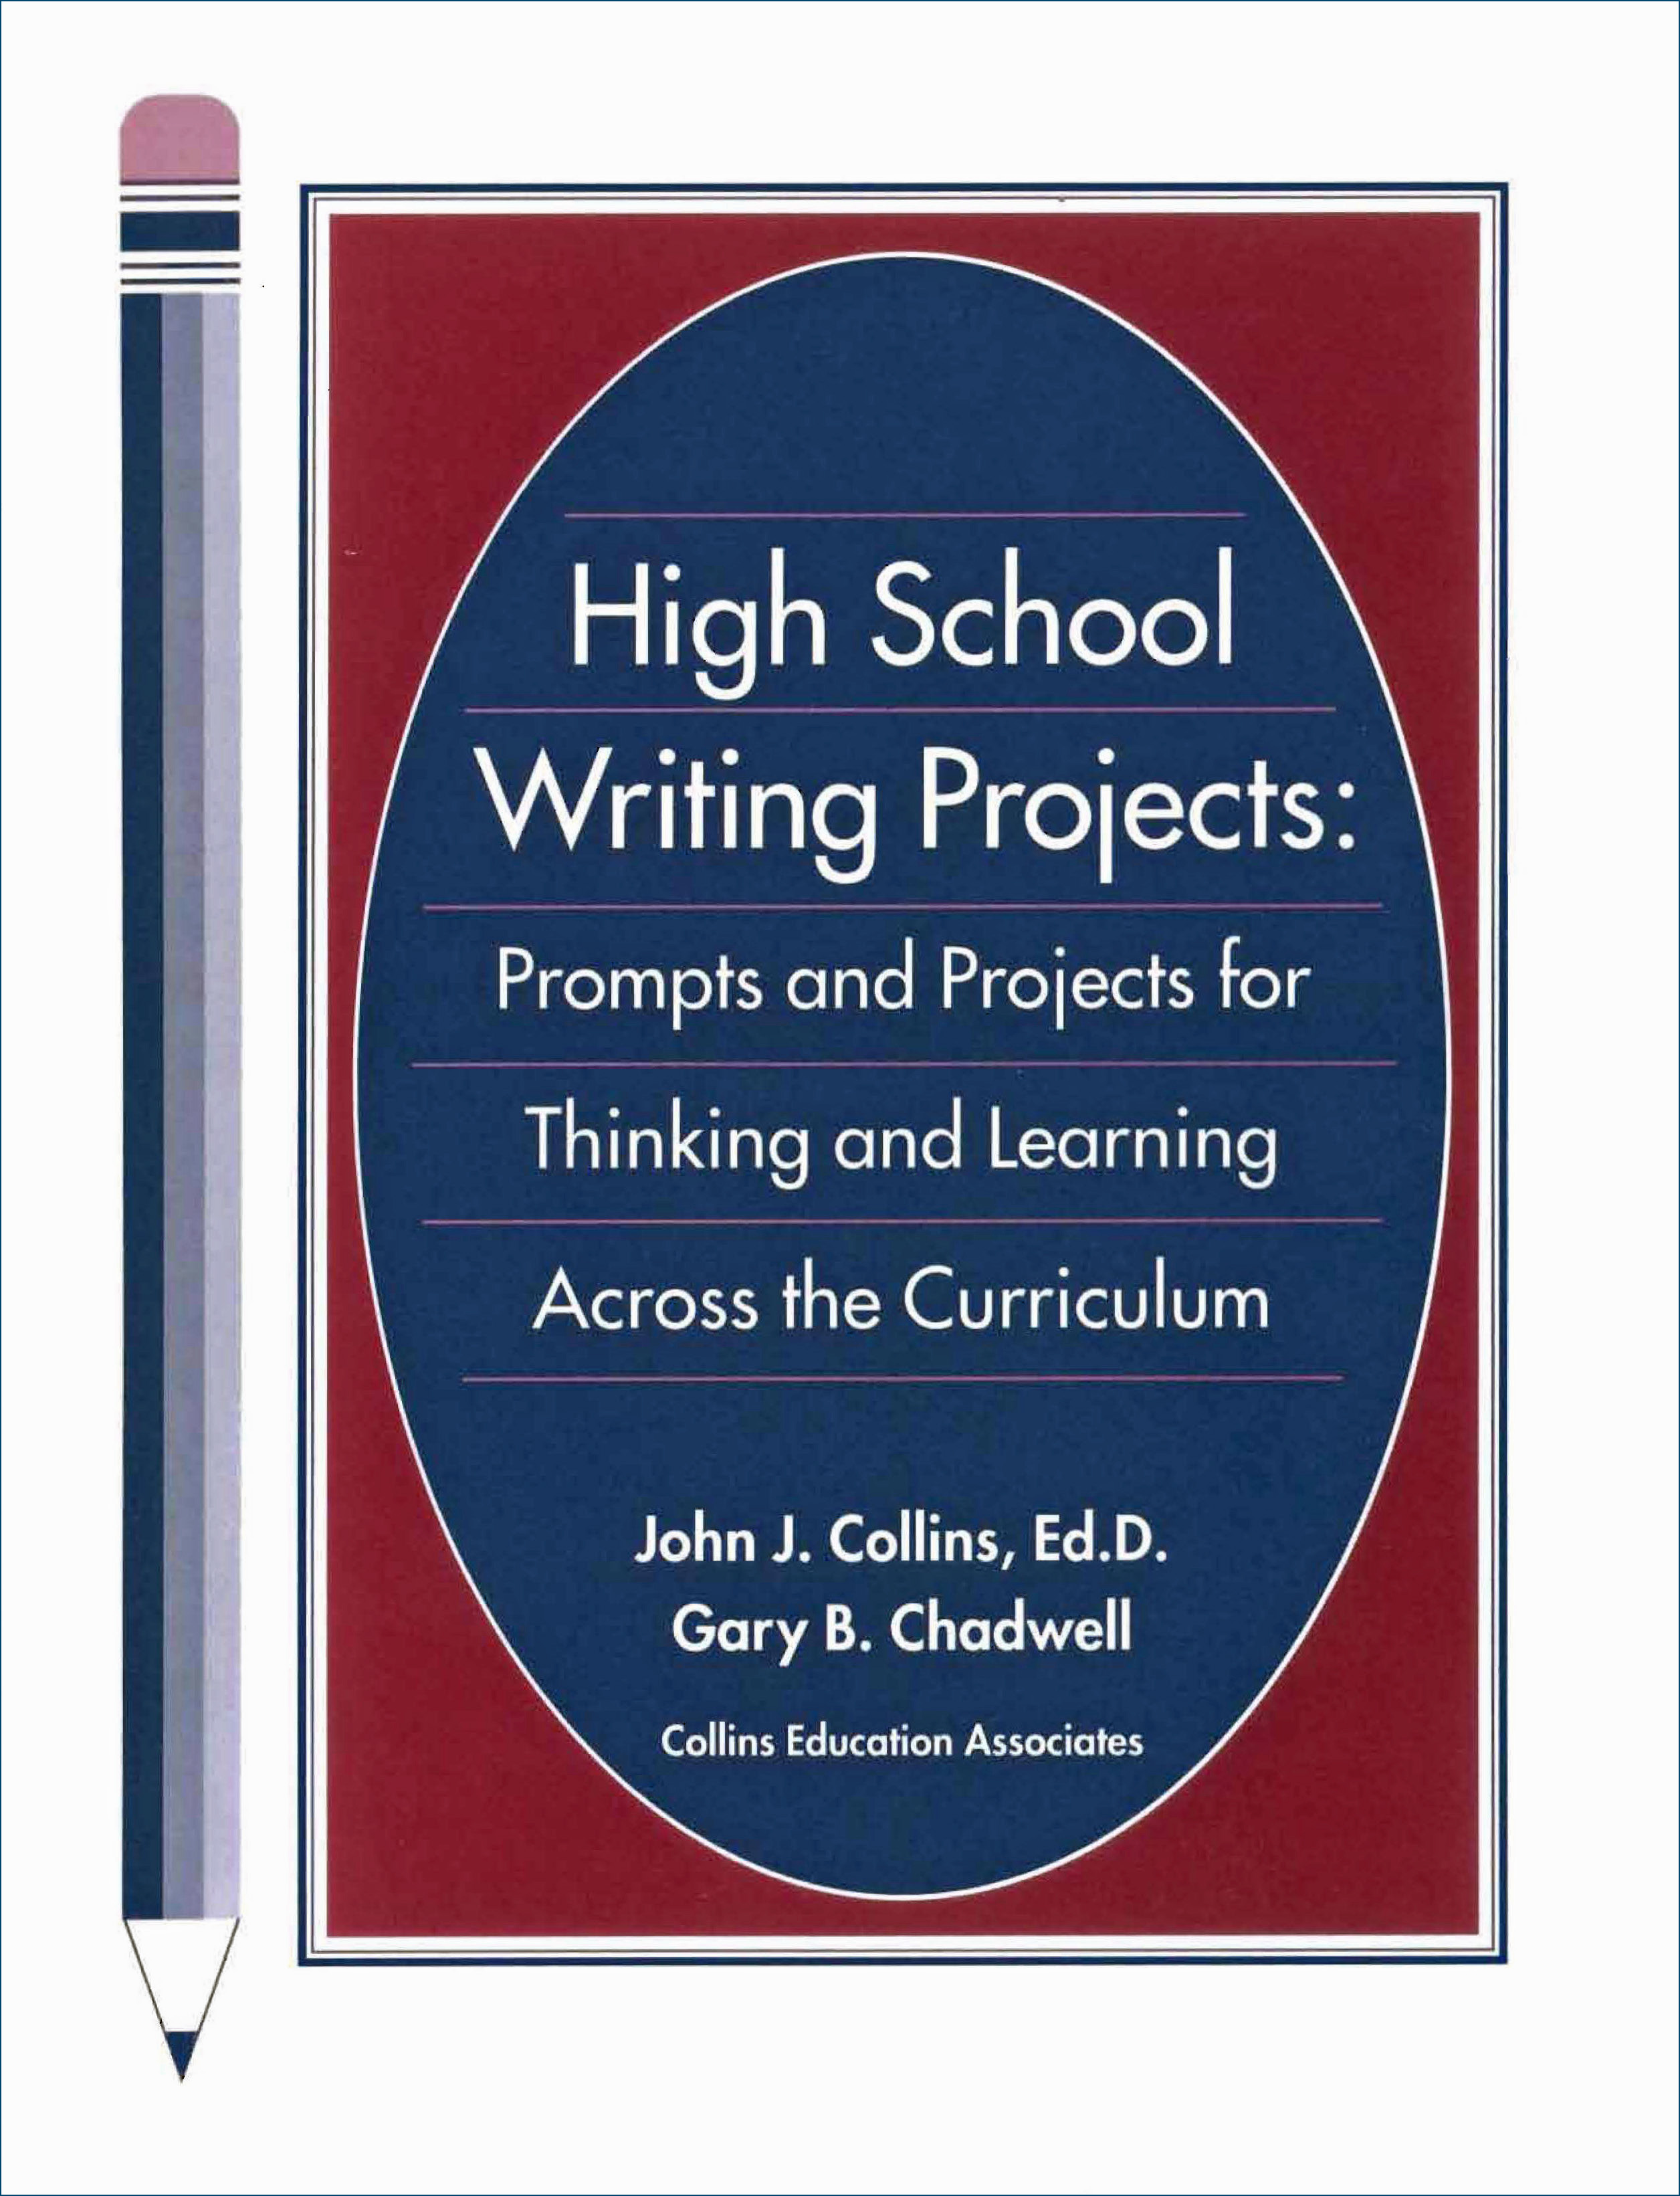 teach thesis statements high school Teaching thesis statements is an integral part and more lesson options to create what i consider an invaluable resource for middle school and high school teachers.